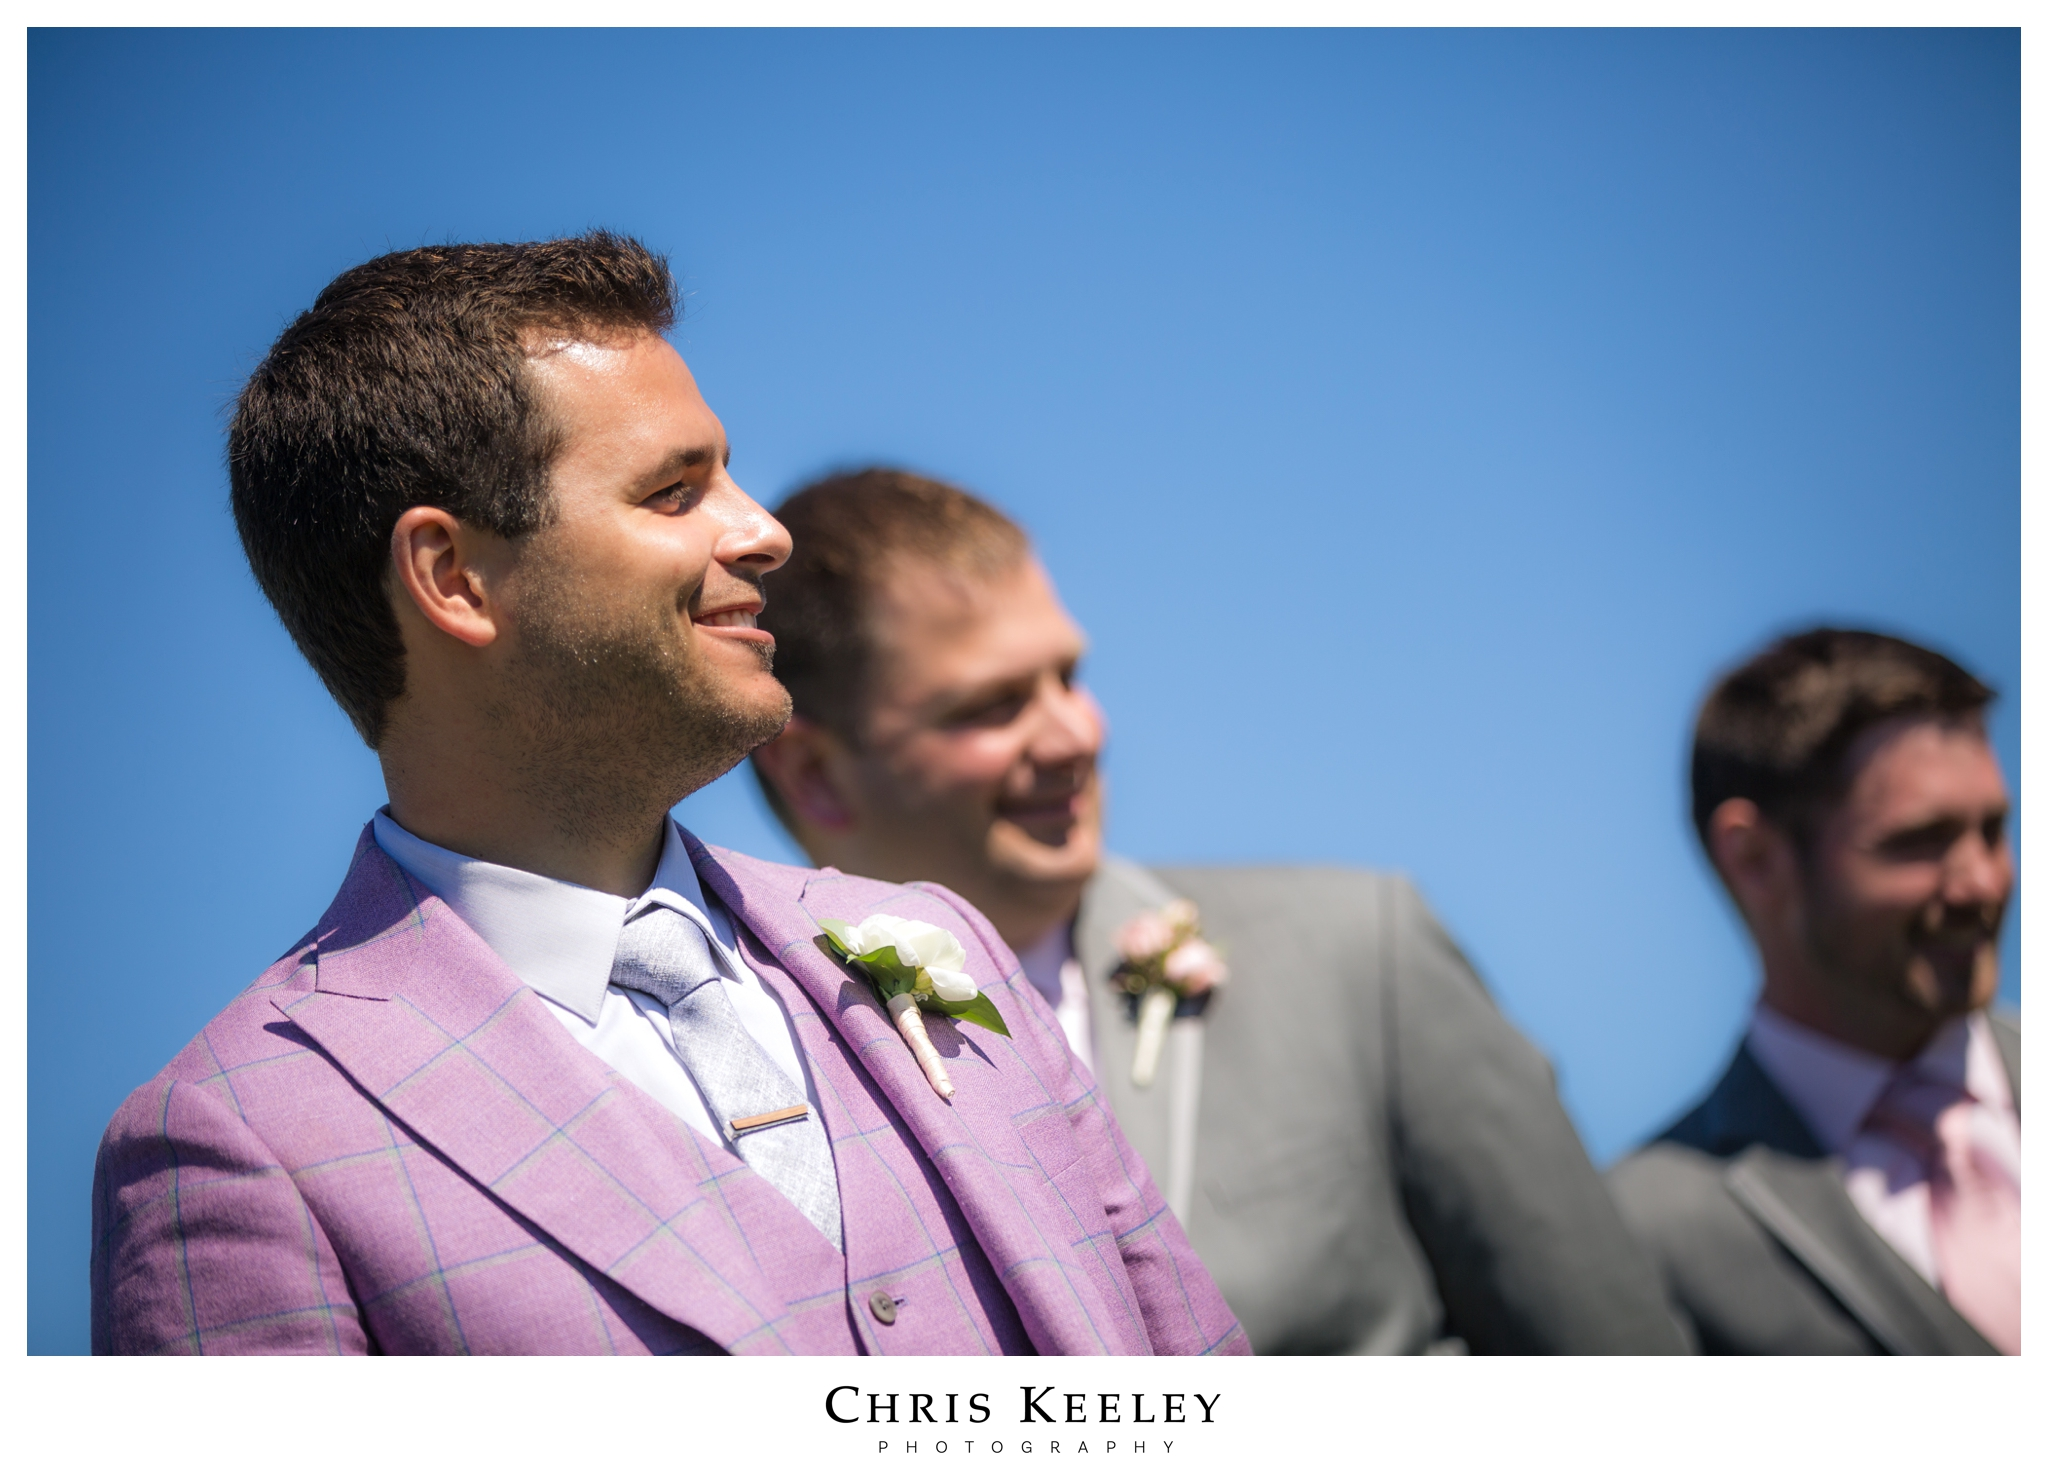 groom-waiting-for-bride-at-ceremony.jpg